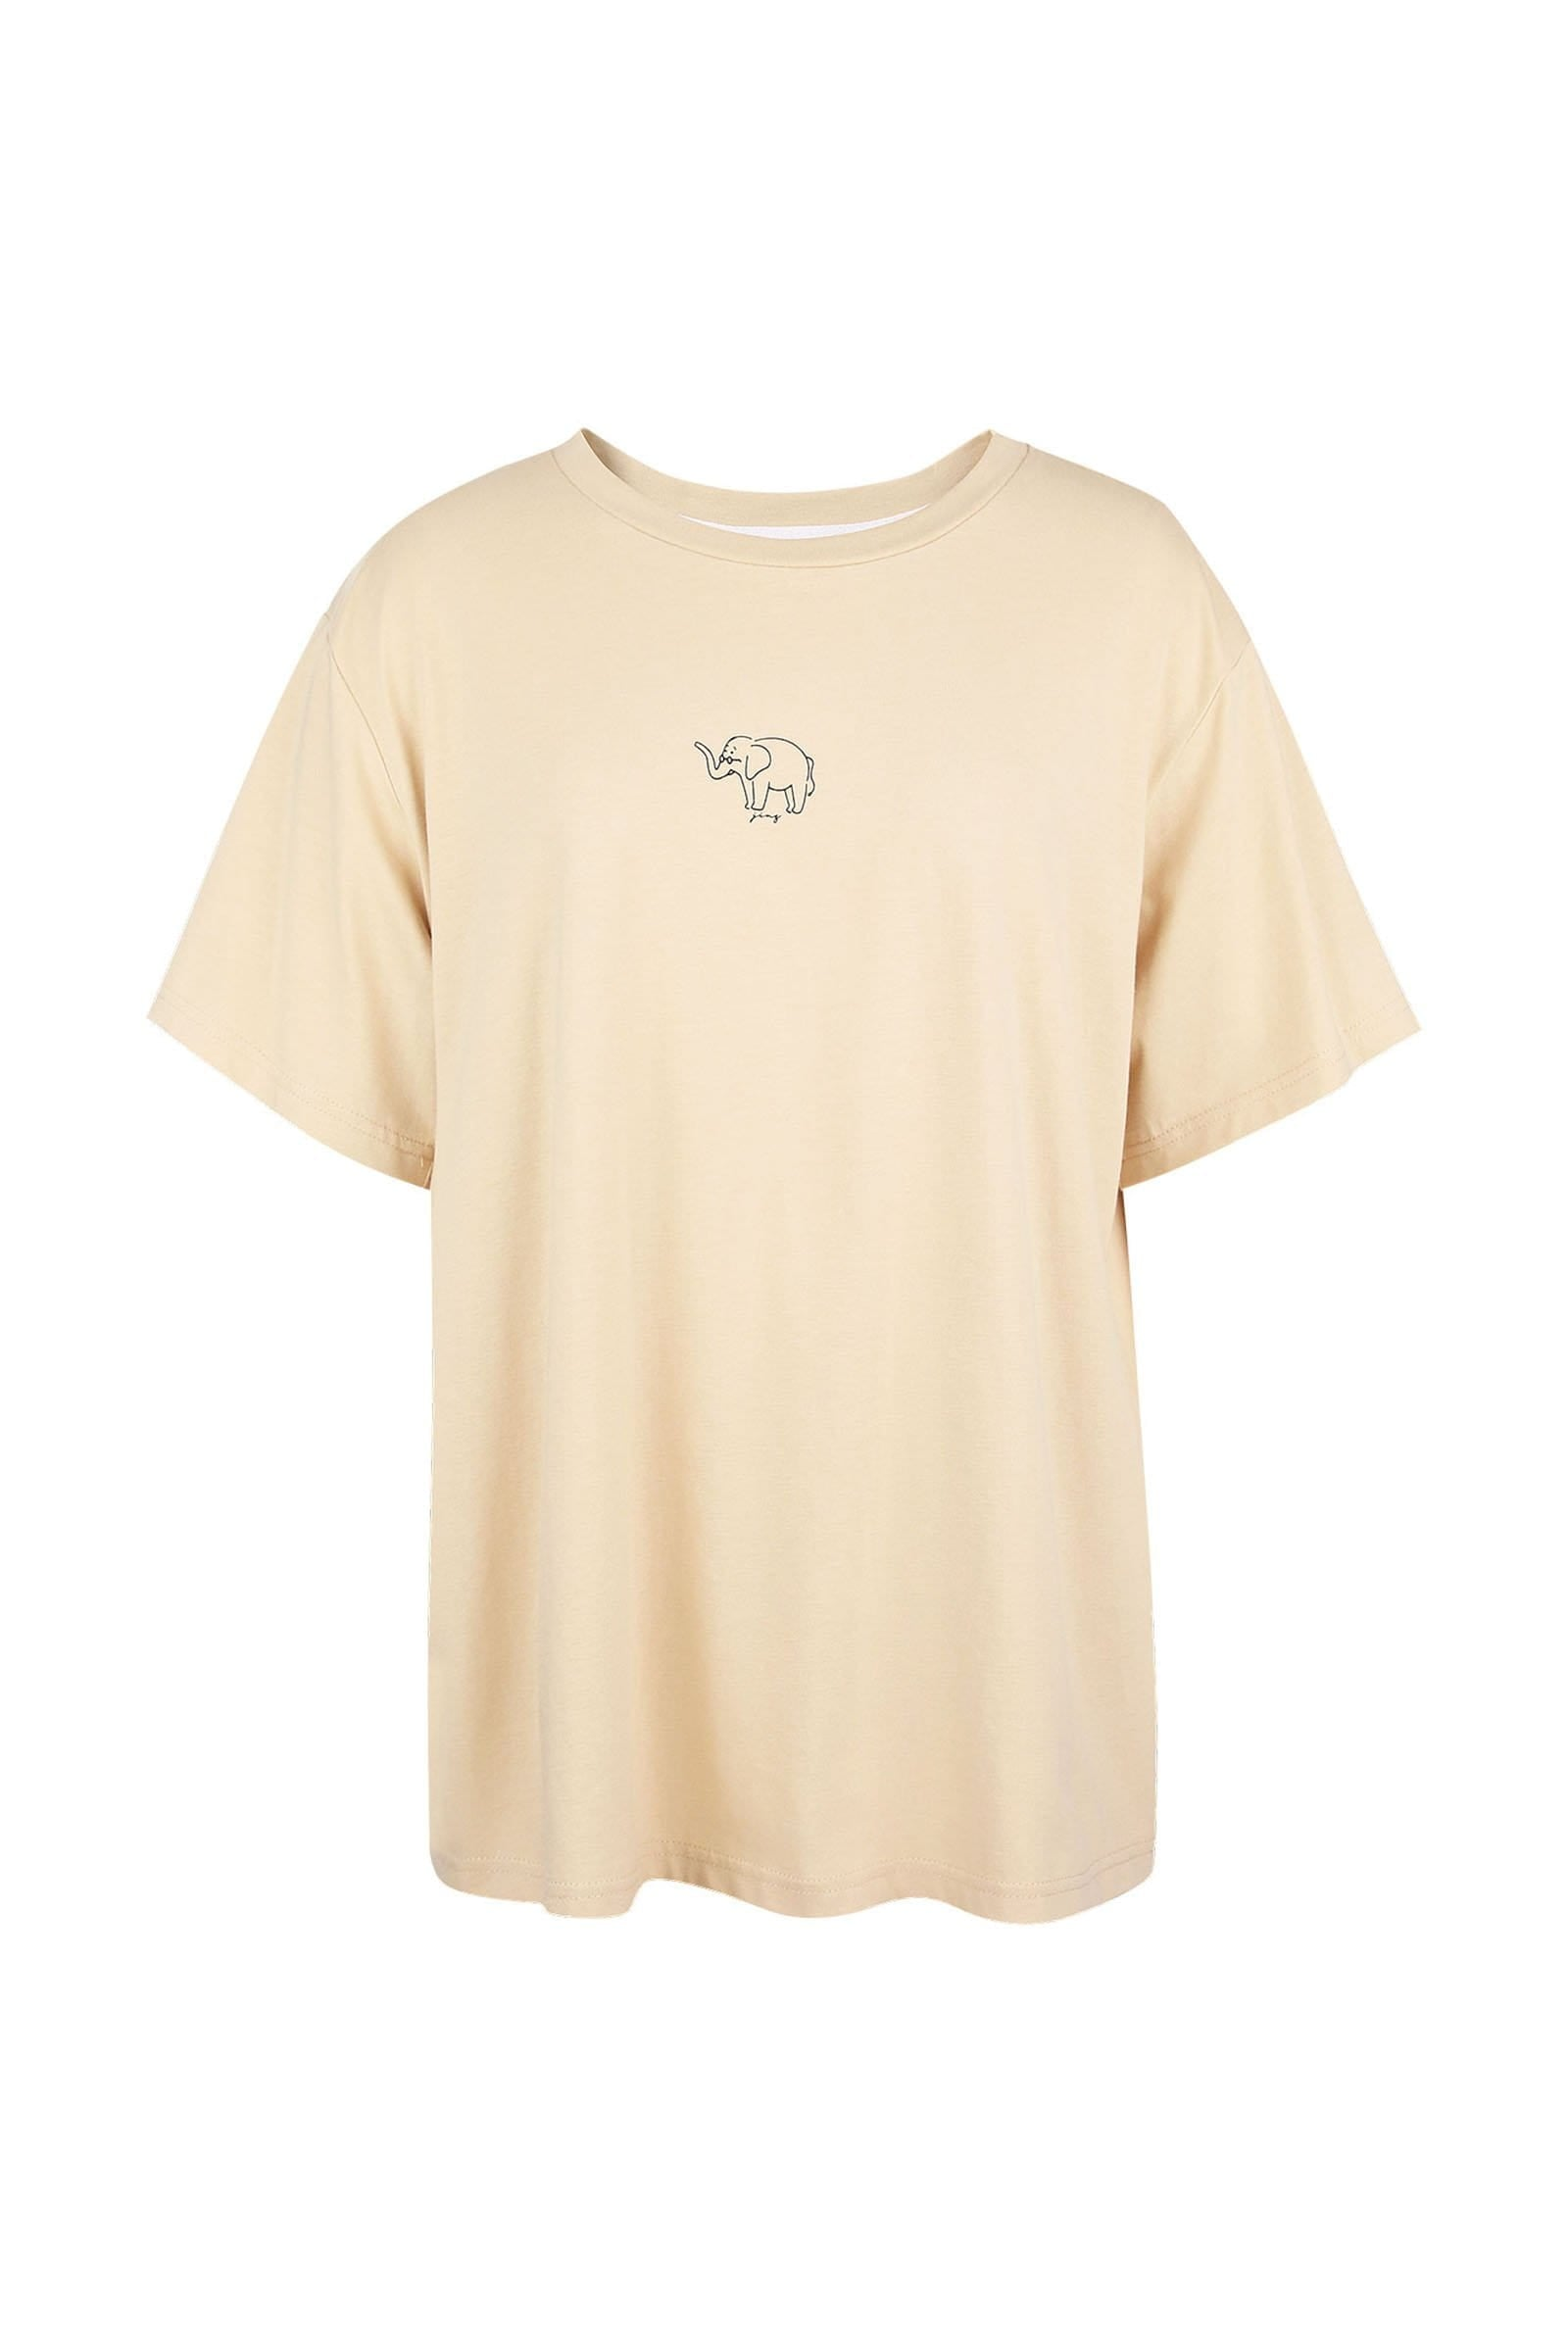 Little Buddy Sand Tee